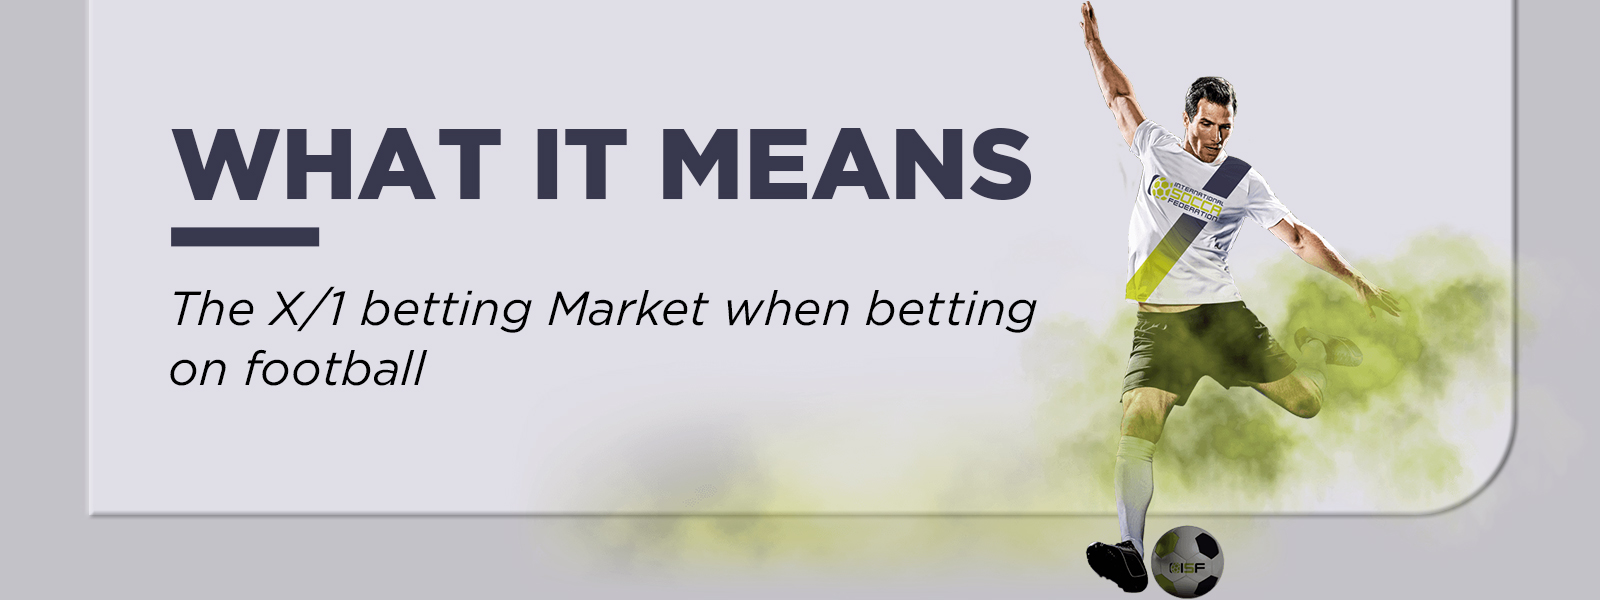 What It Means The X/1 Betting Market In Football Betting?